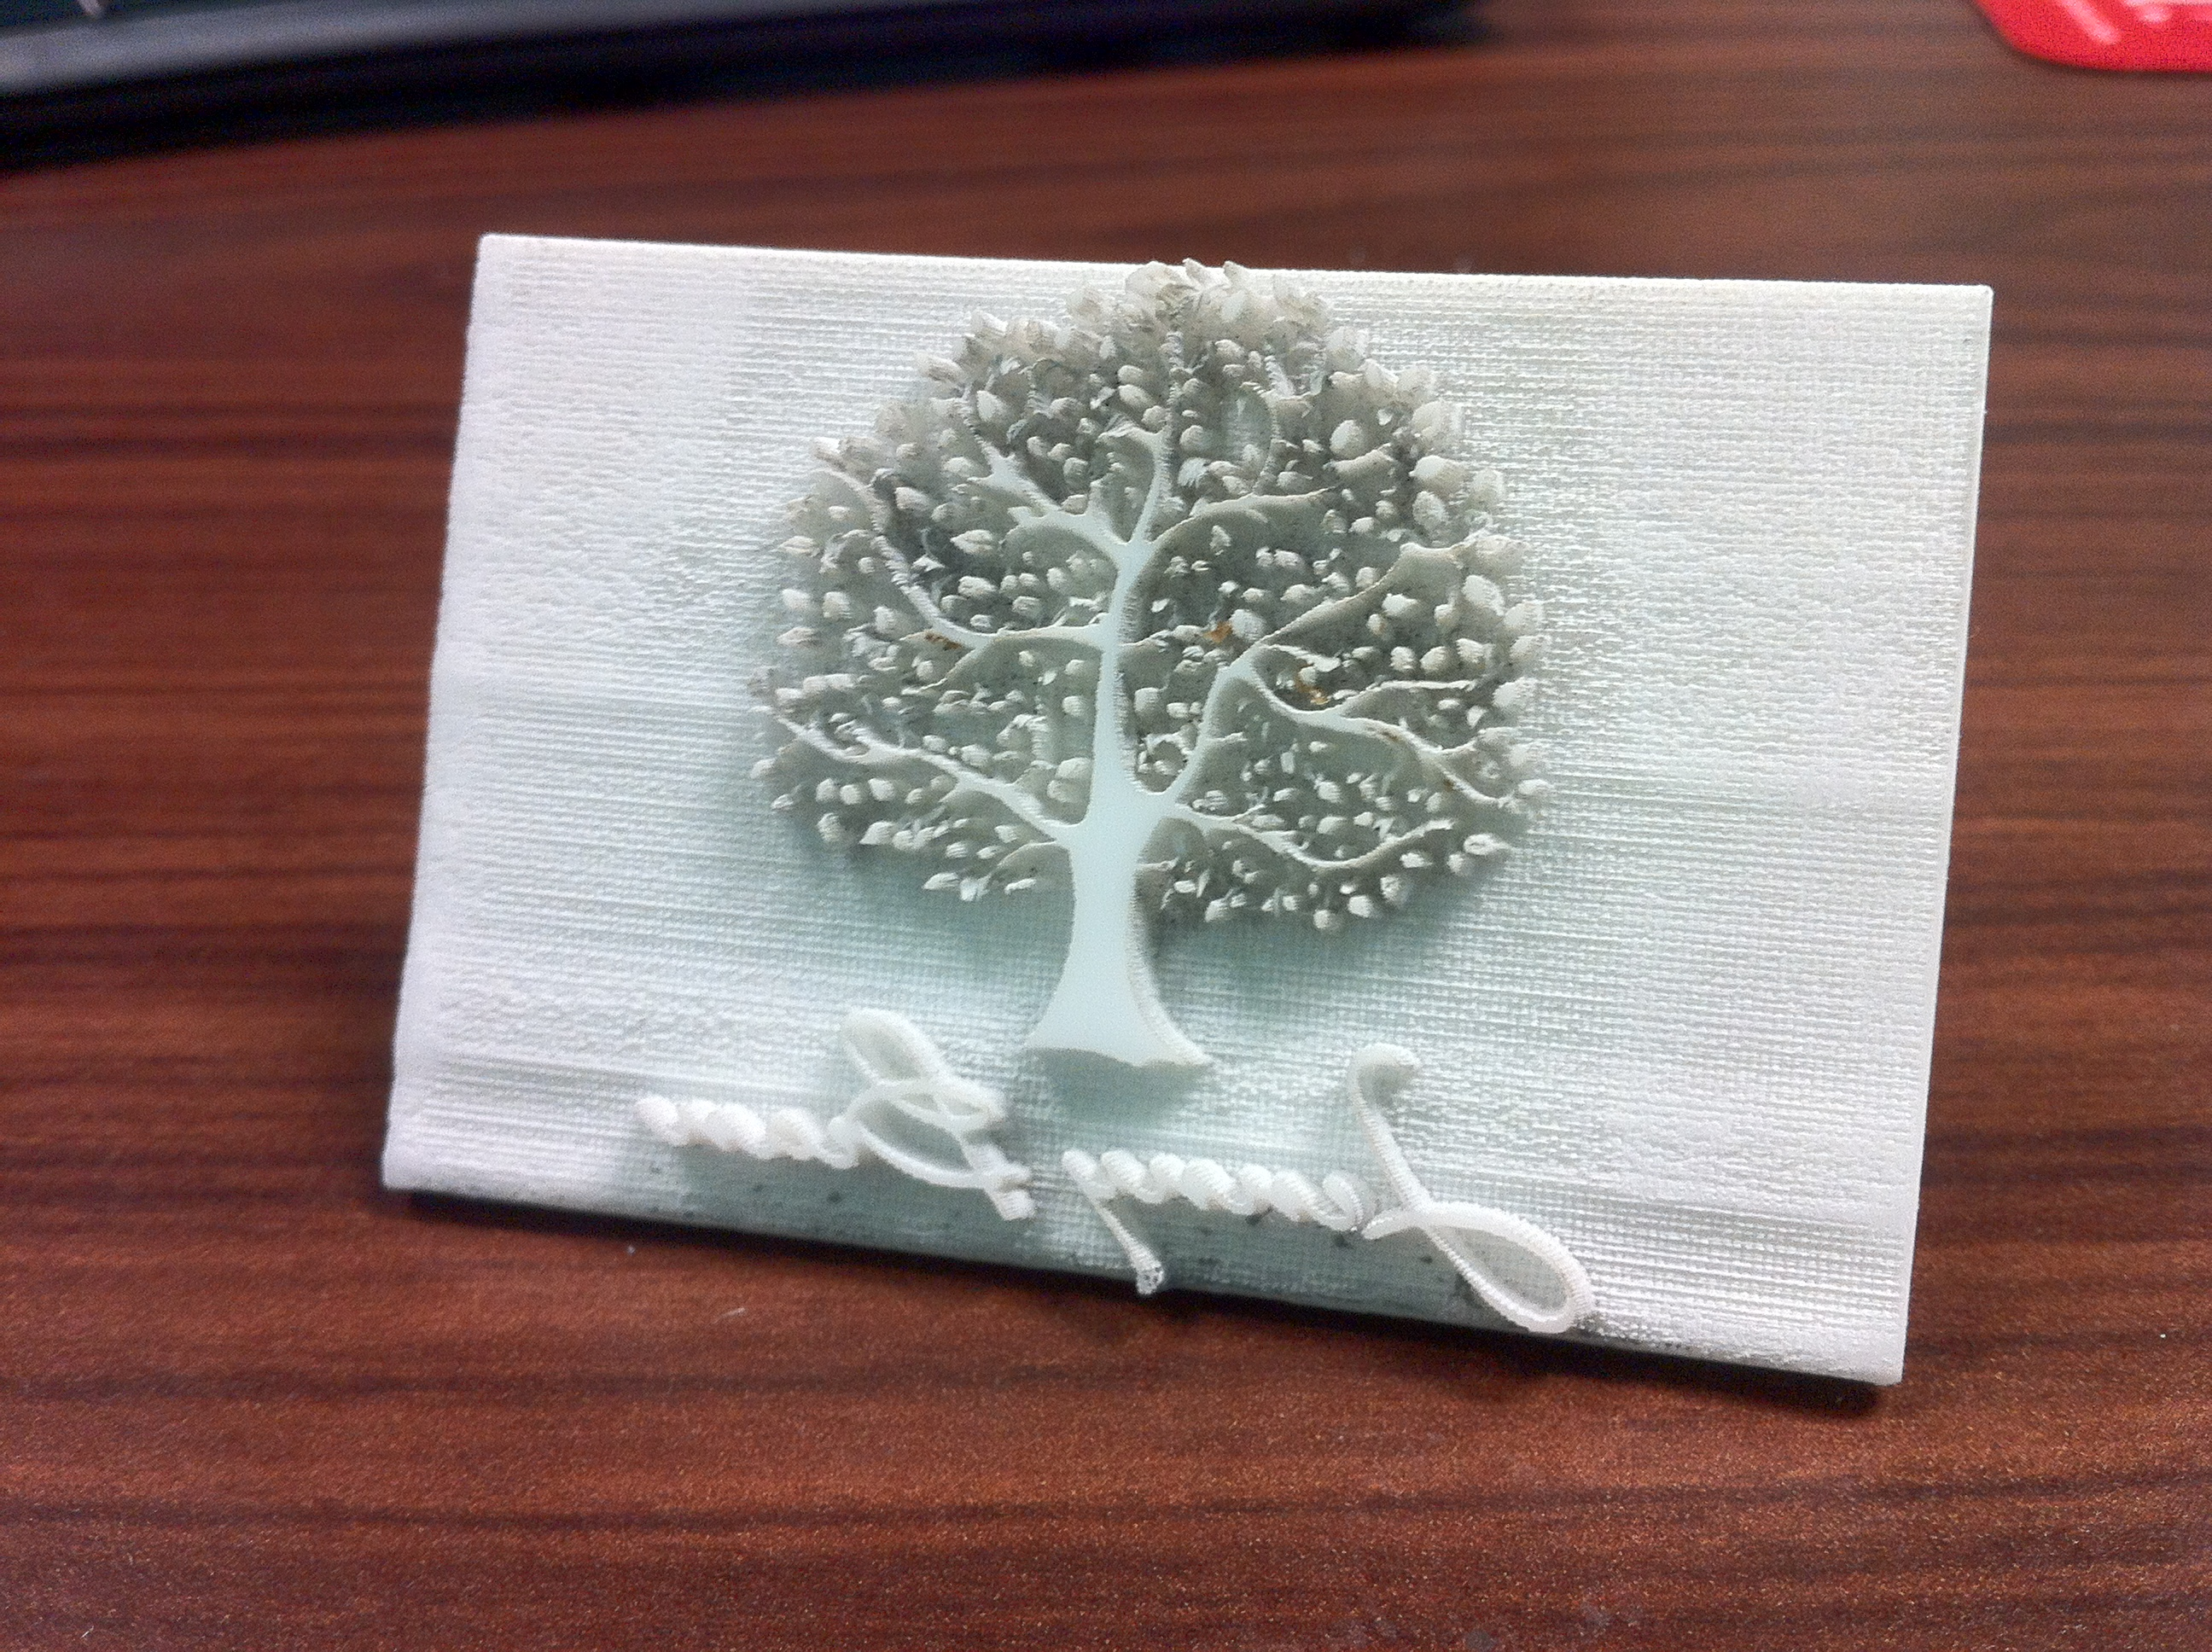 SoapStamp DeepEngraving Solid Stamp Introducing New Better Quality Soap Stamps